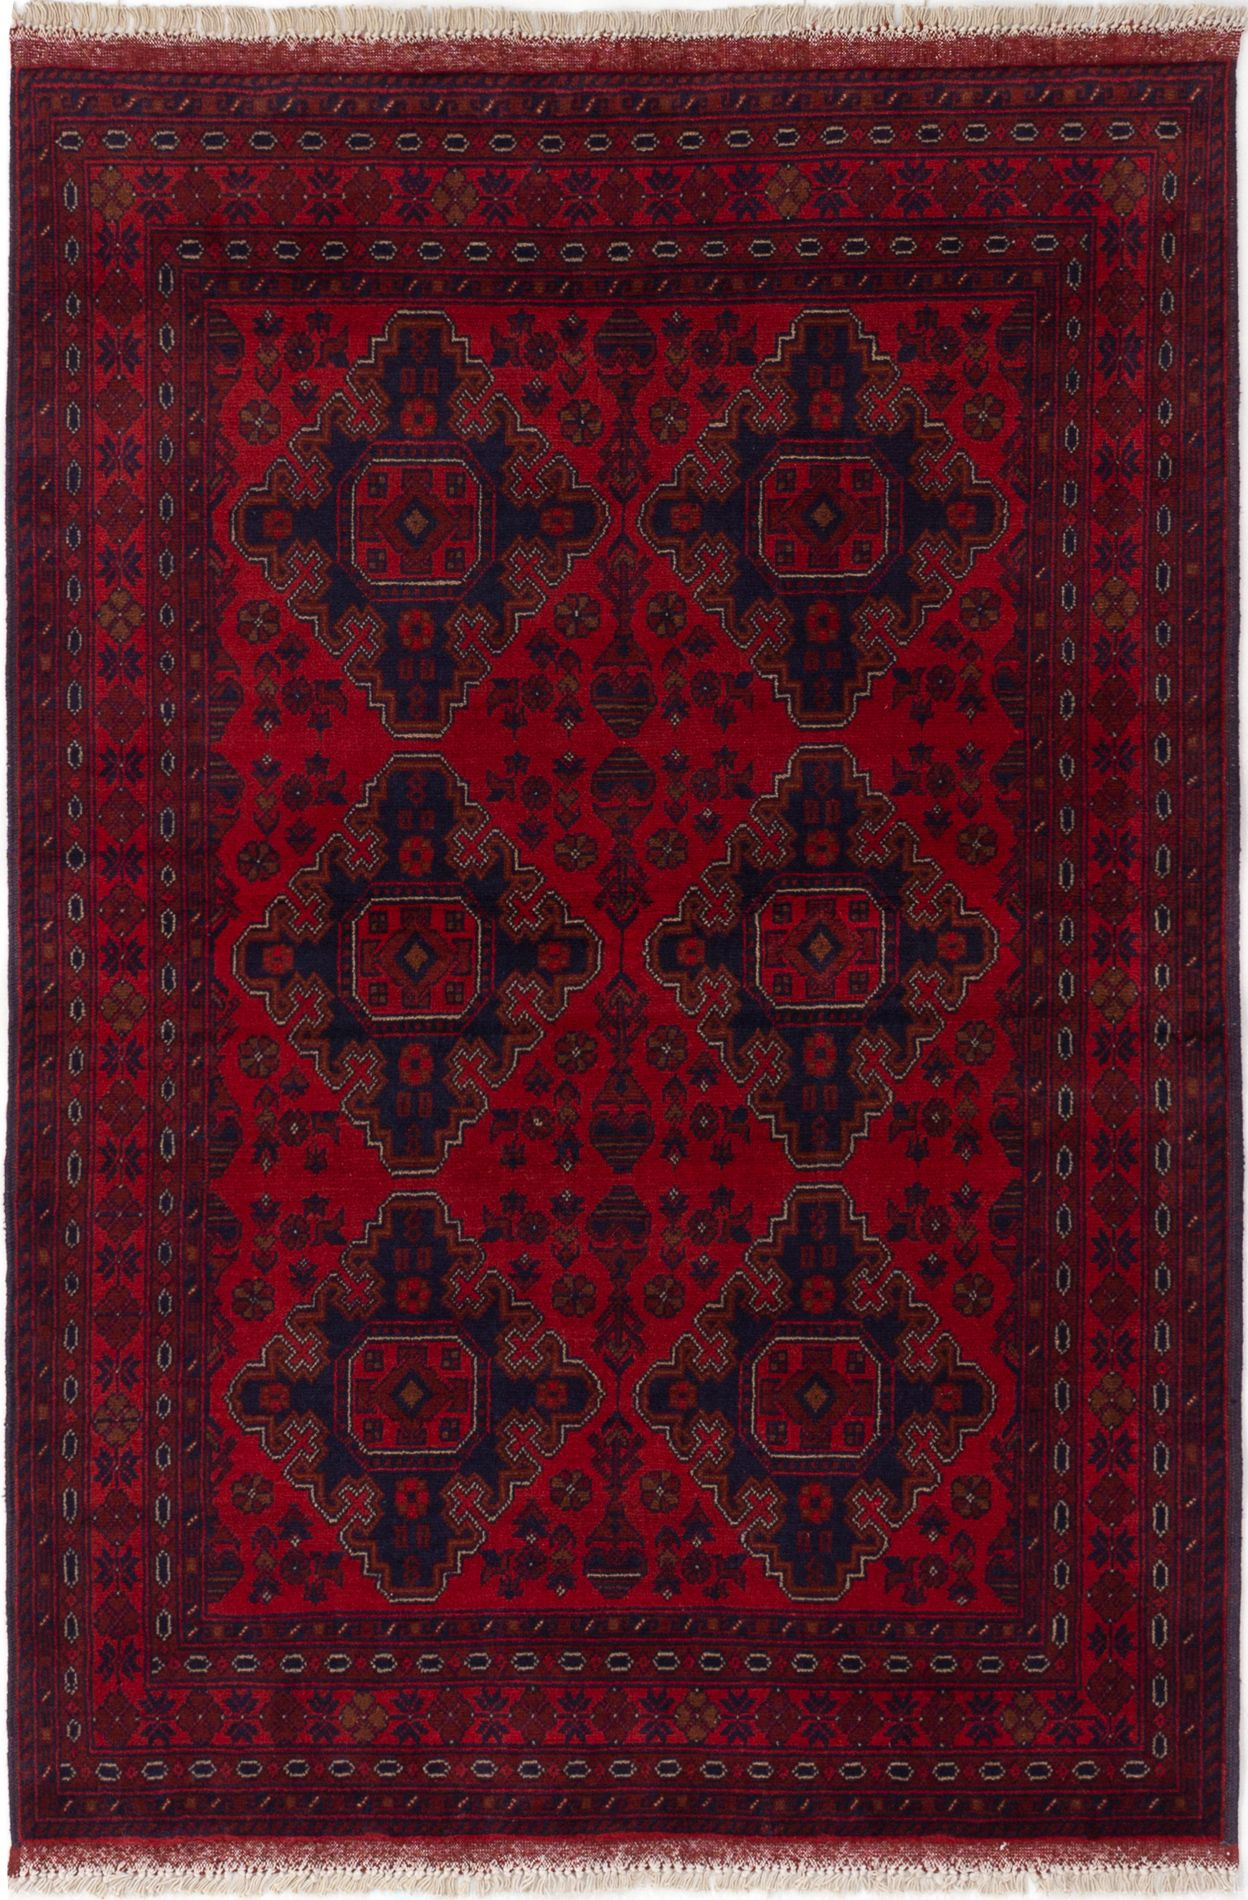 """Hand-knotted Finest Khal Mohammadi Red Wool Rug 4'2"""" x 6'2""""  Size: 4'2"""" x 6'2"""""""